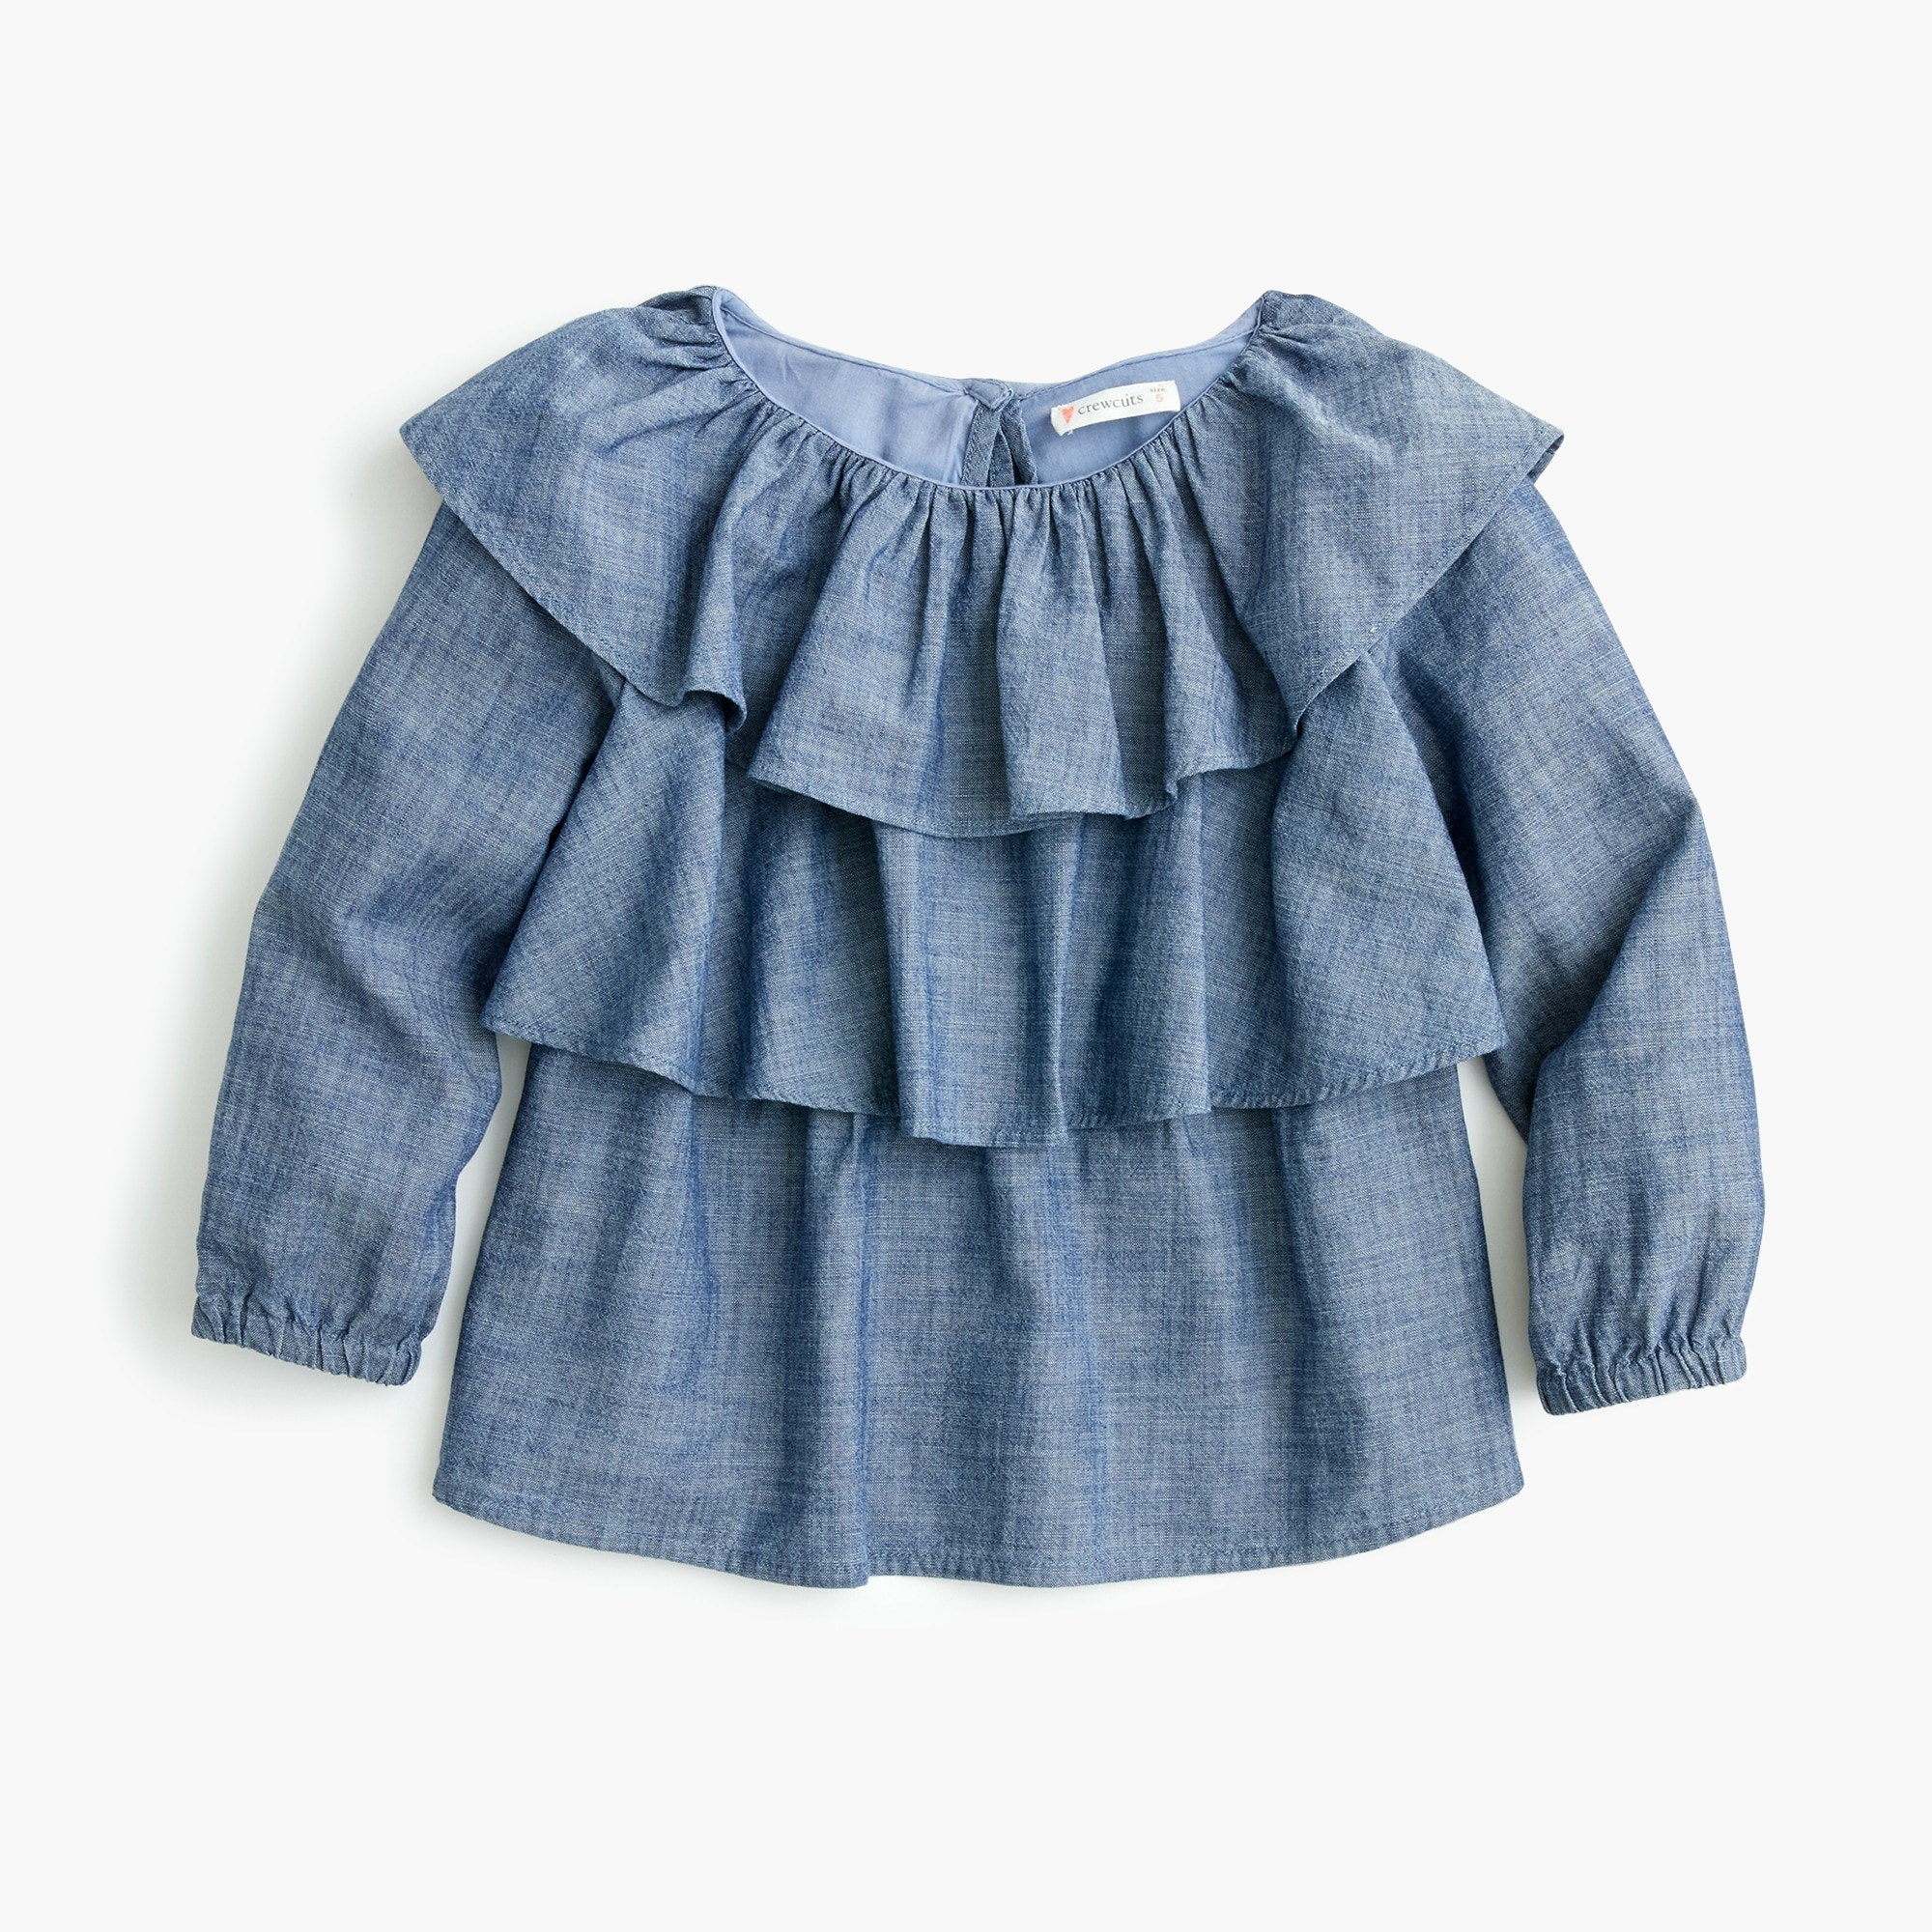 girls Girls' ruffle-trimmed top in chambray